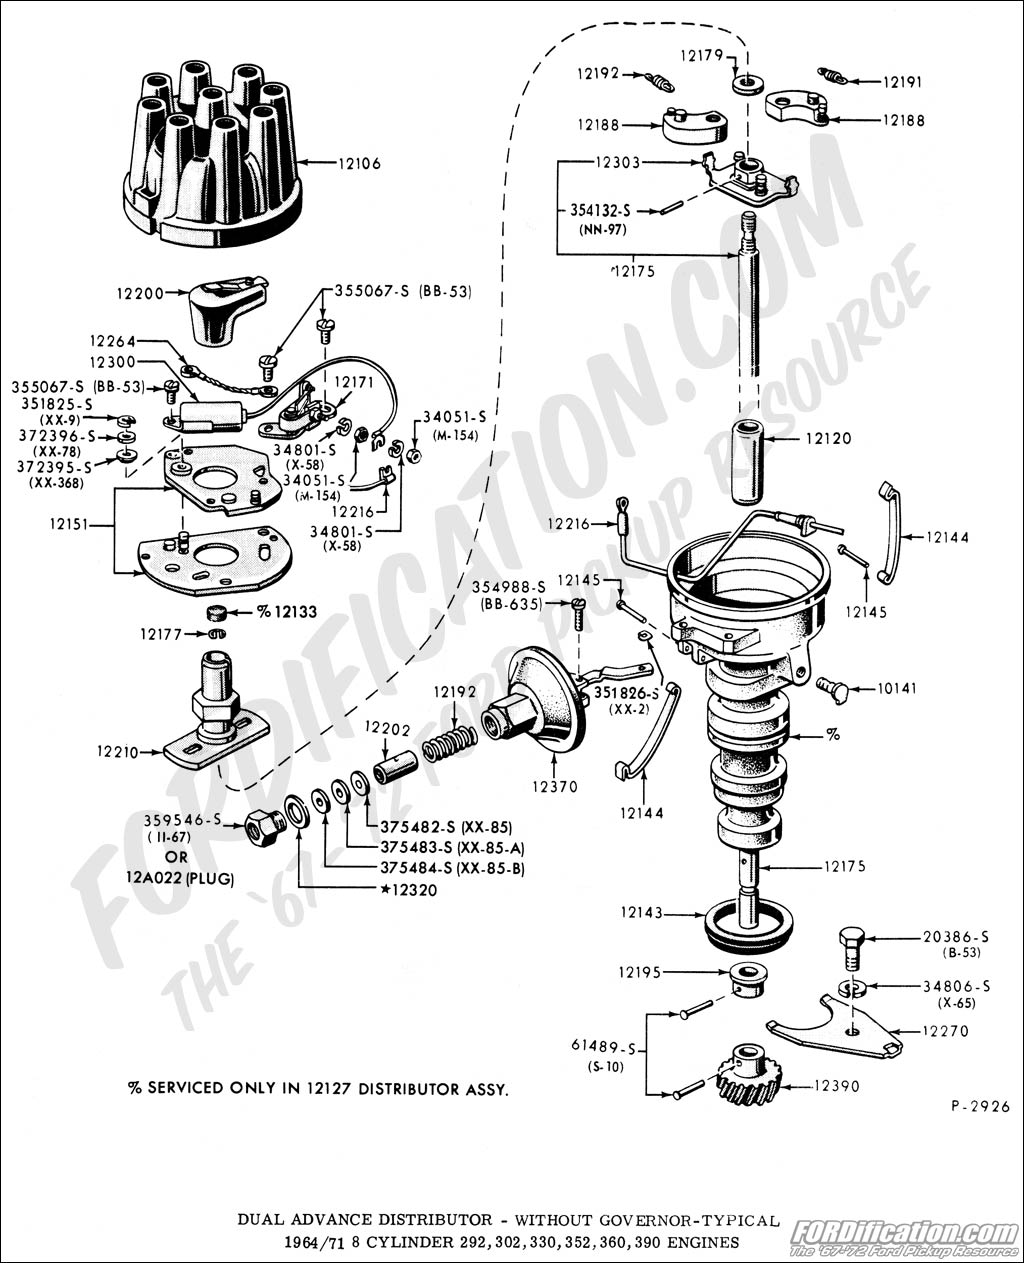 hight resolution of ford 302 spark plug wiring diagram wiring library83 ford 302 distributor wiring diagram wiring diagrams schematics